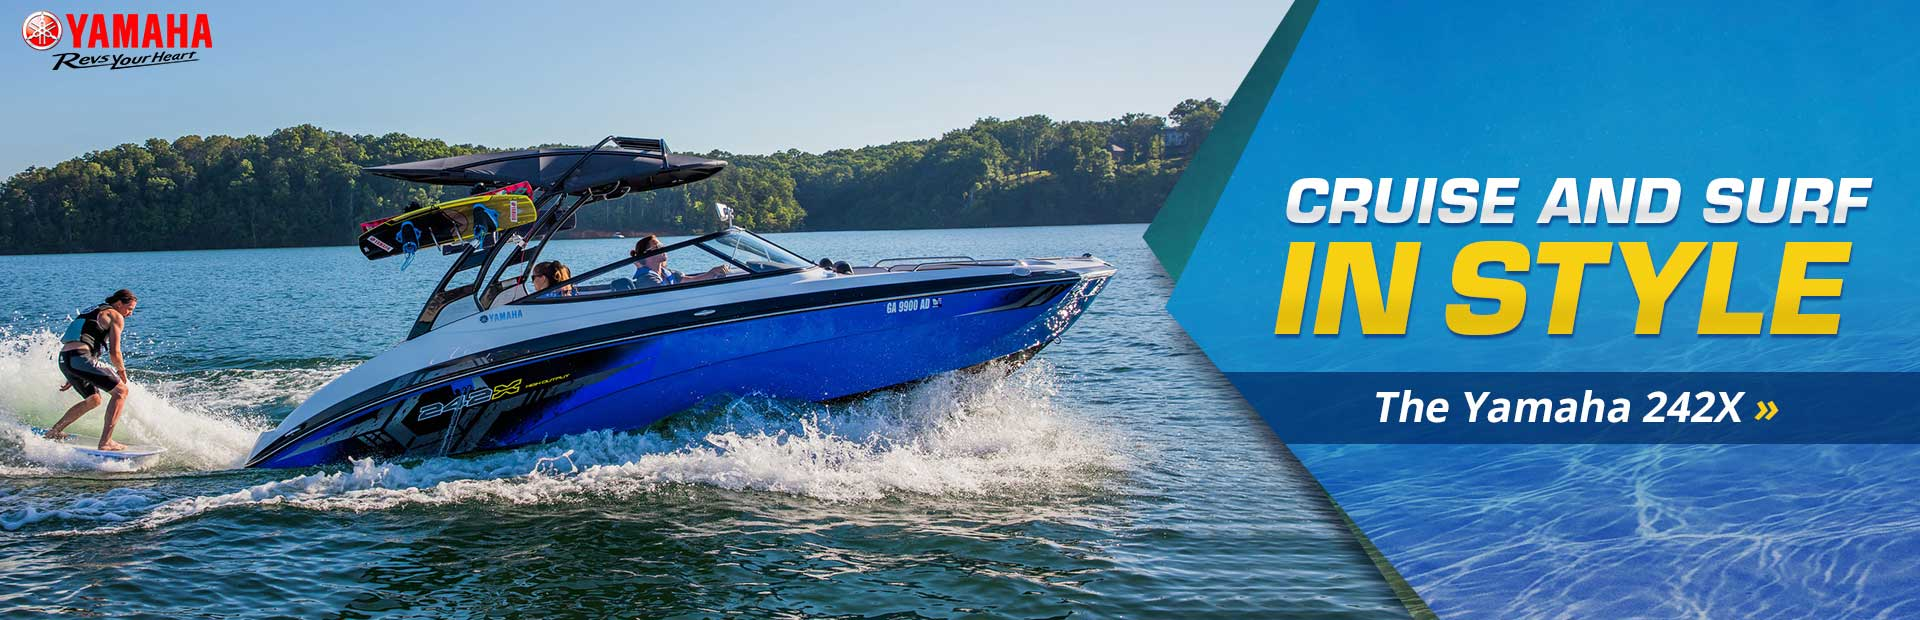 Click here to view the 2018 Yamaha 242X.